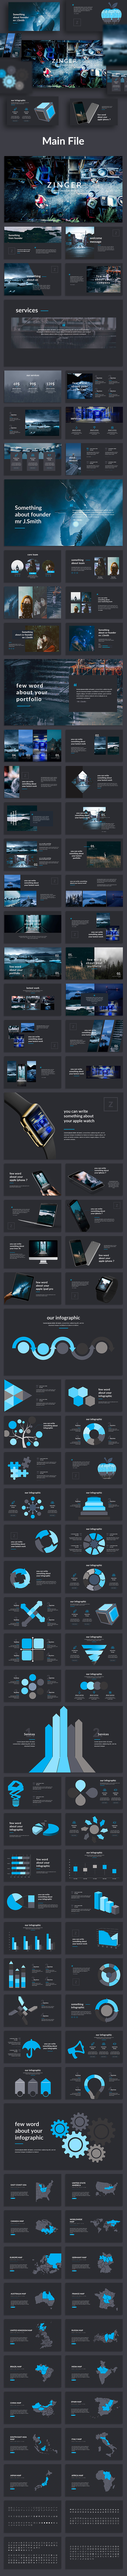 Zinger - Creative Keynote Template - Creative Keynote Templates